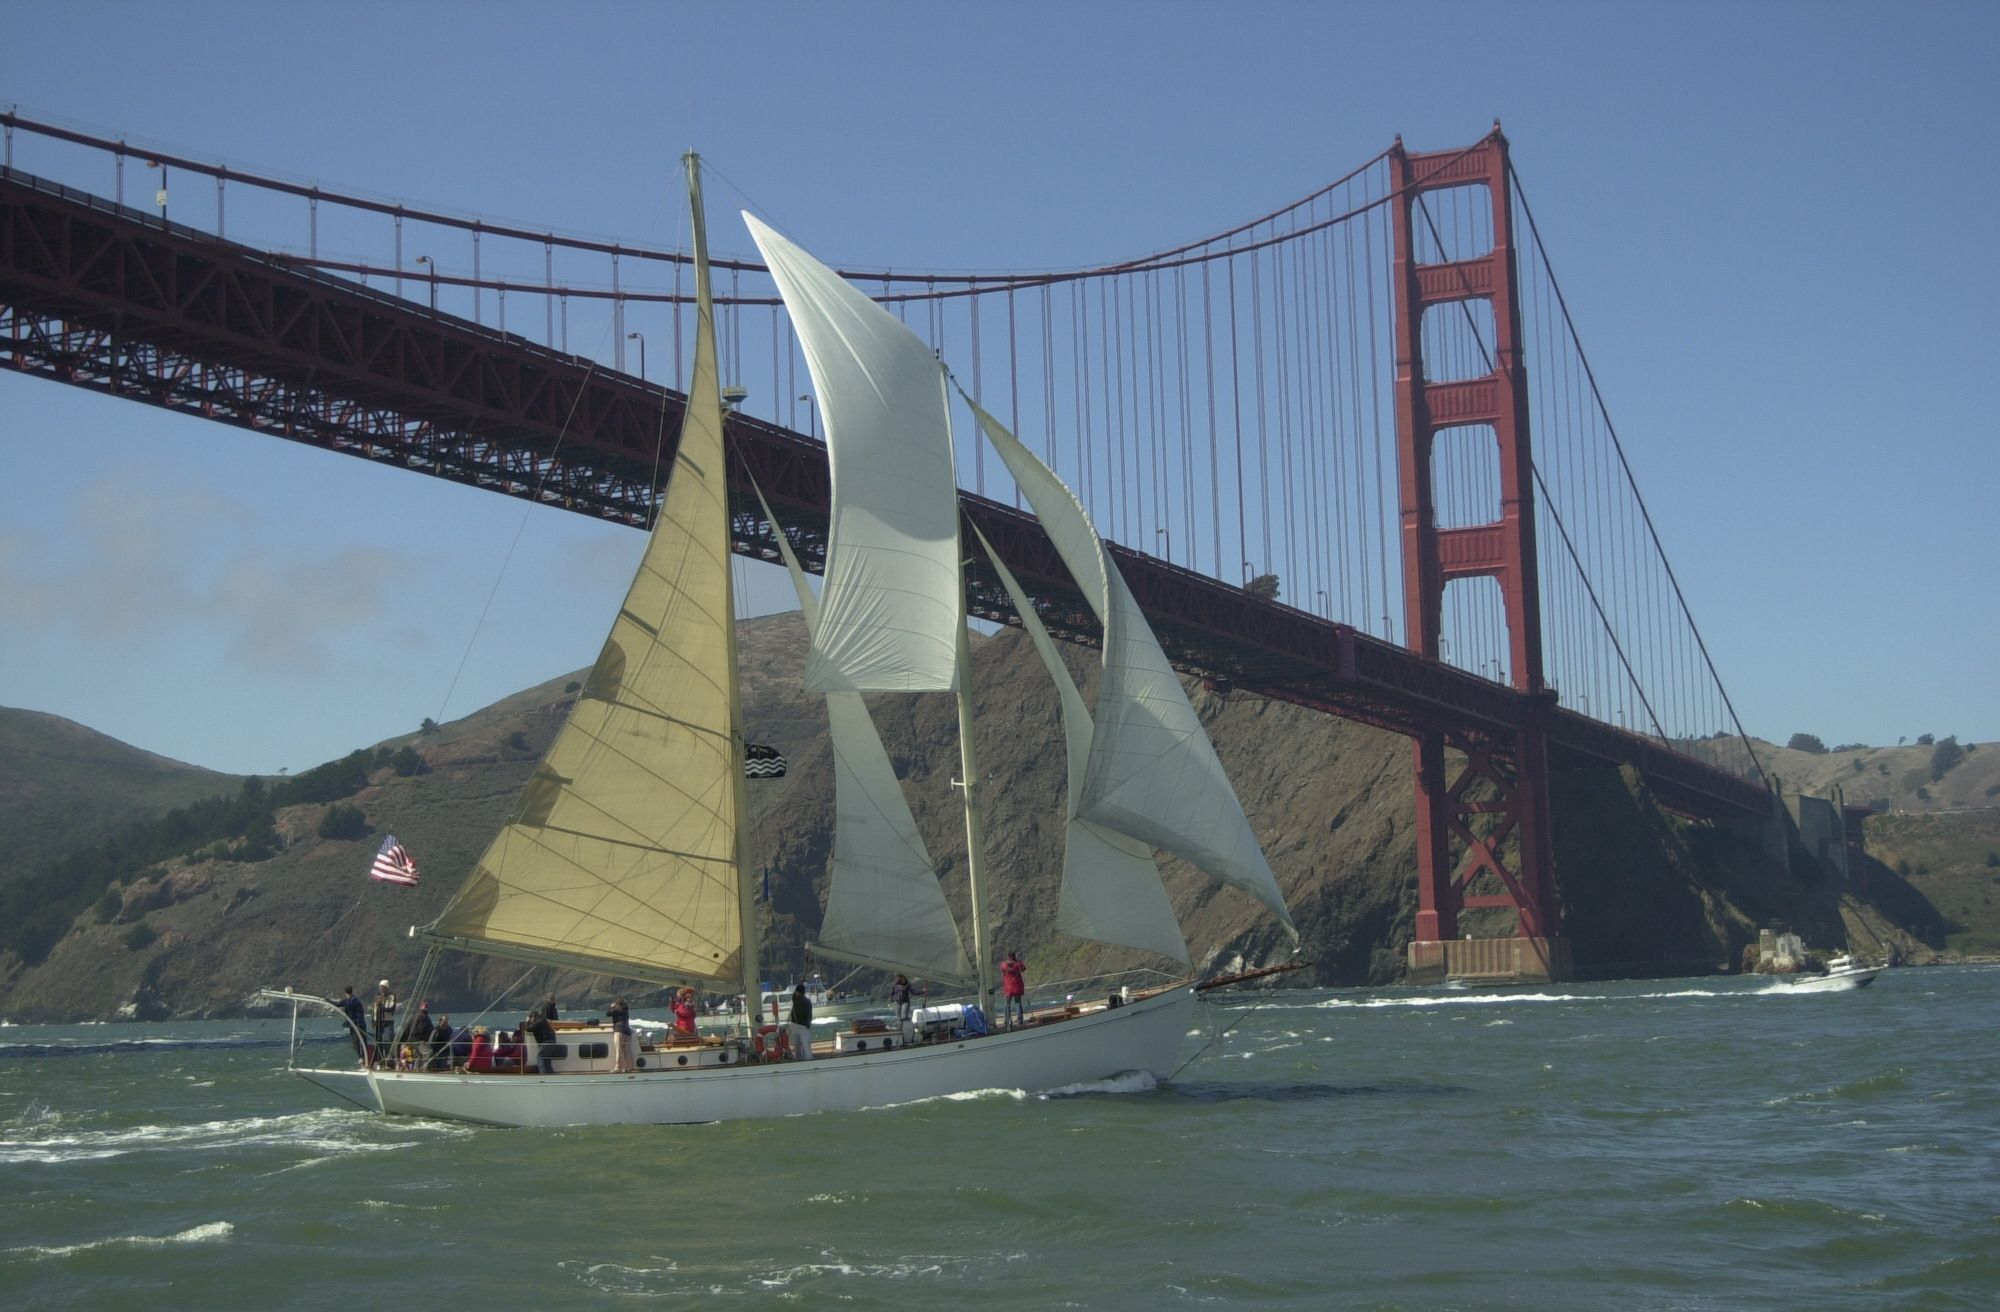 Matthew Turner sailing under the Golden Gate Bridge © Call of the Sea